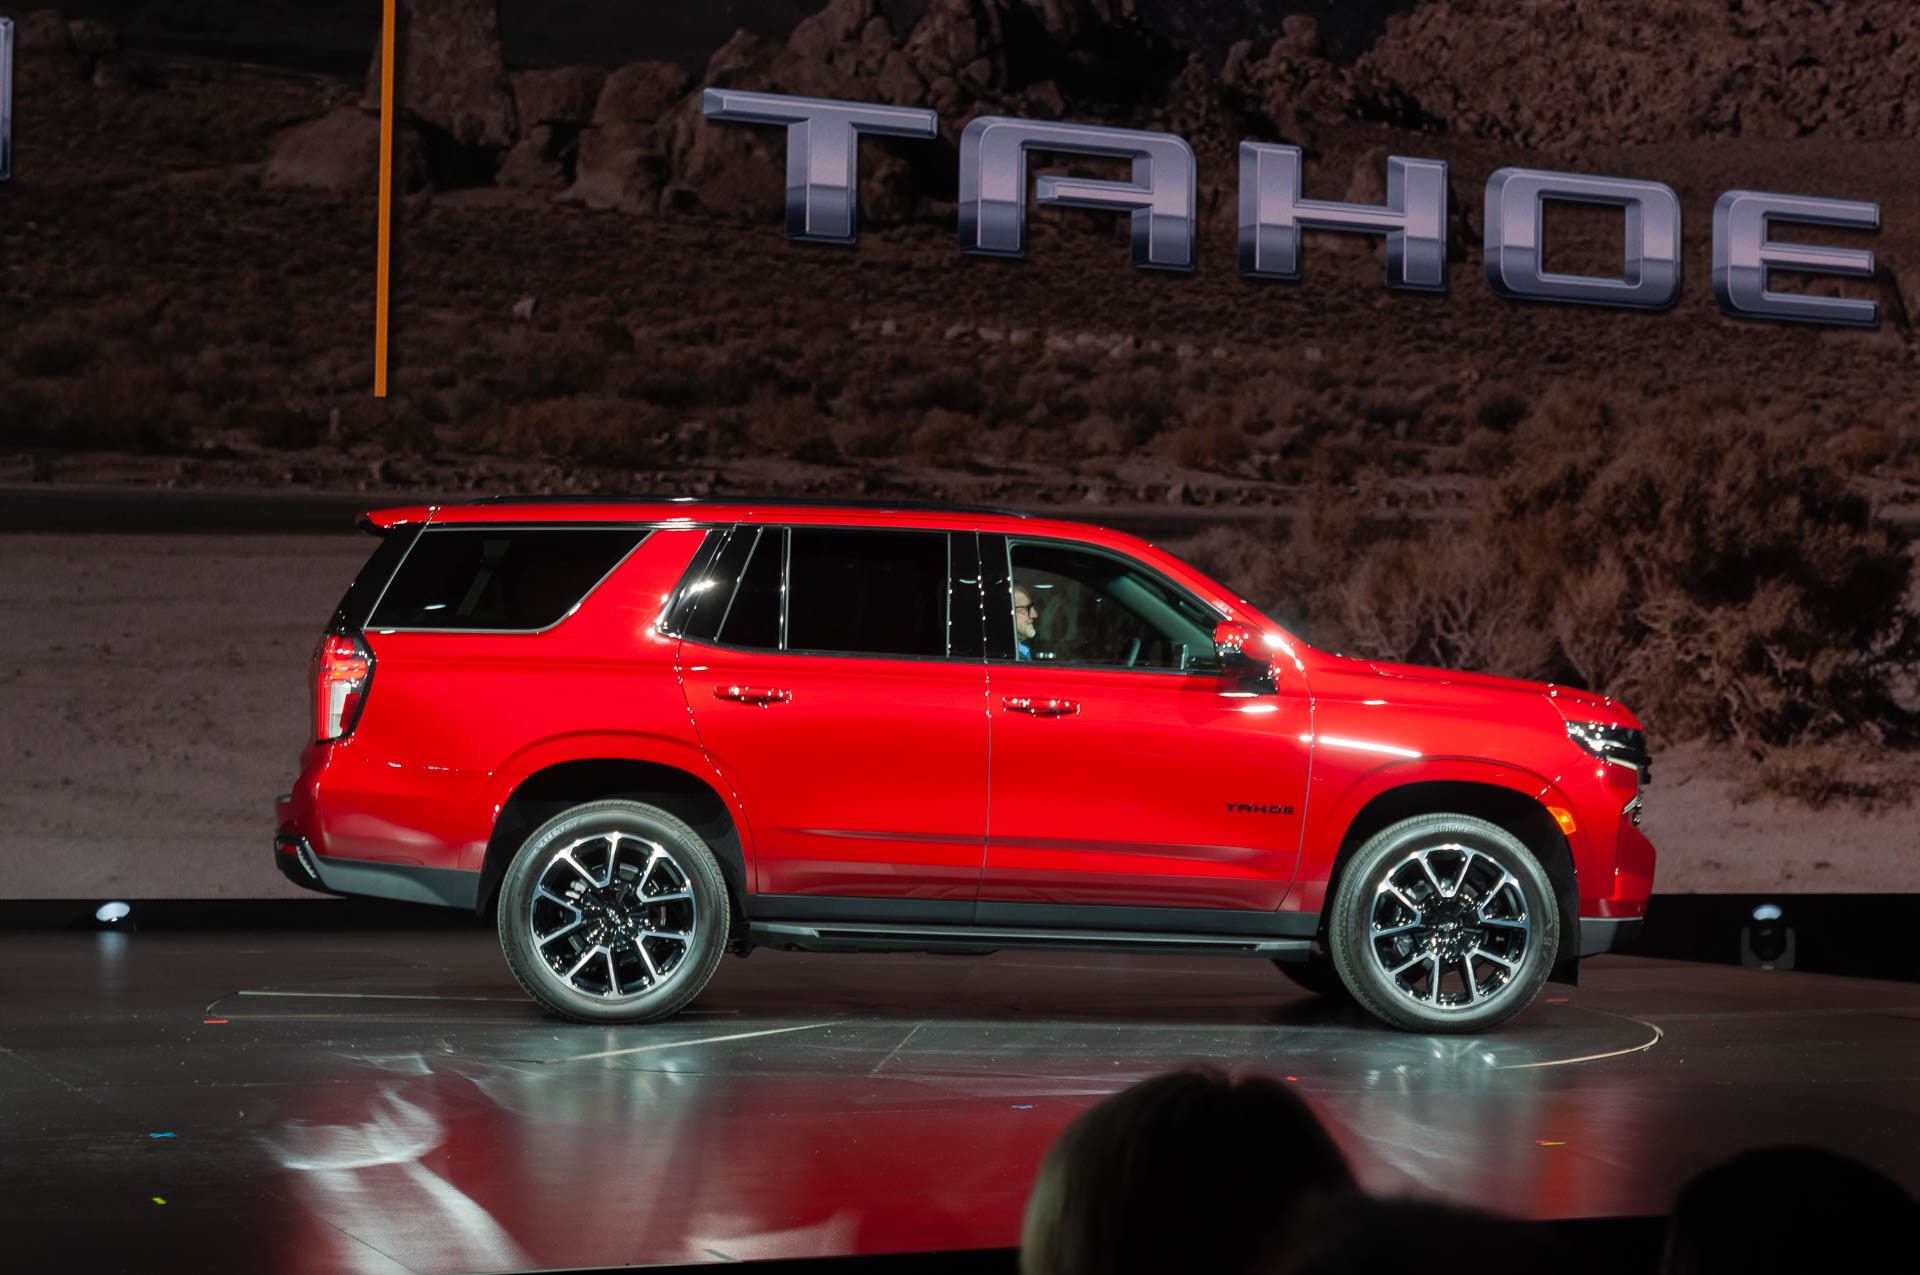 2021 Chevy Tahoe and Suburban, 2021 Mercedes-Benz GLA, GMA ...